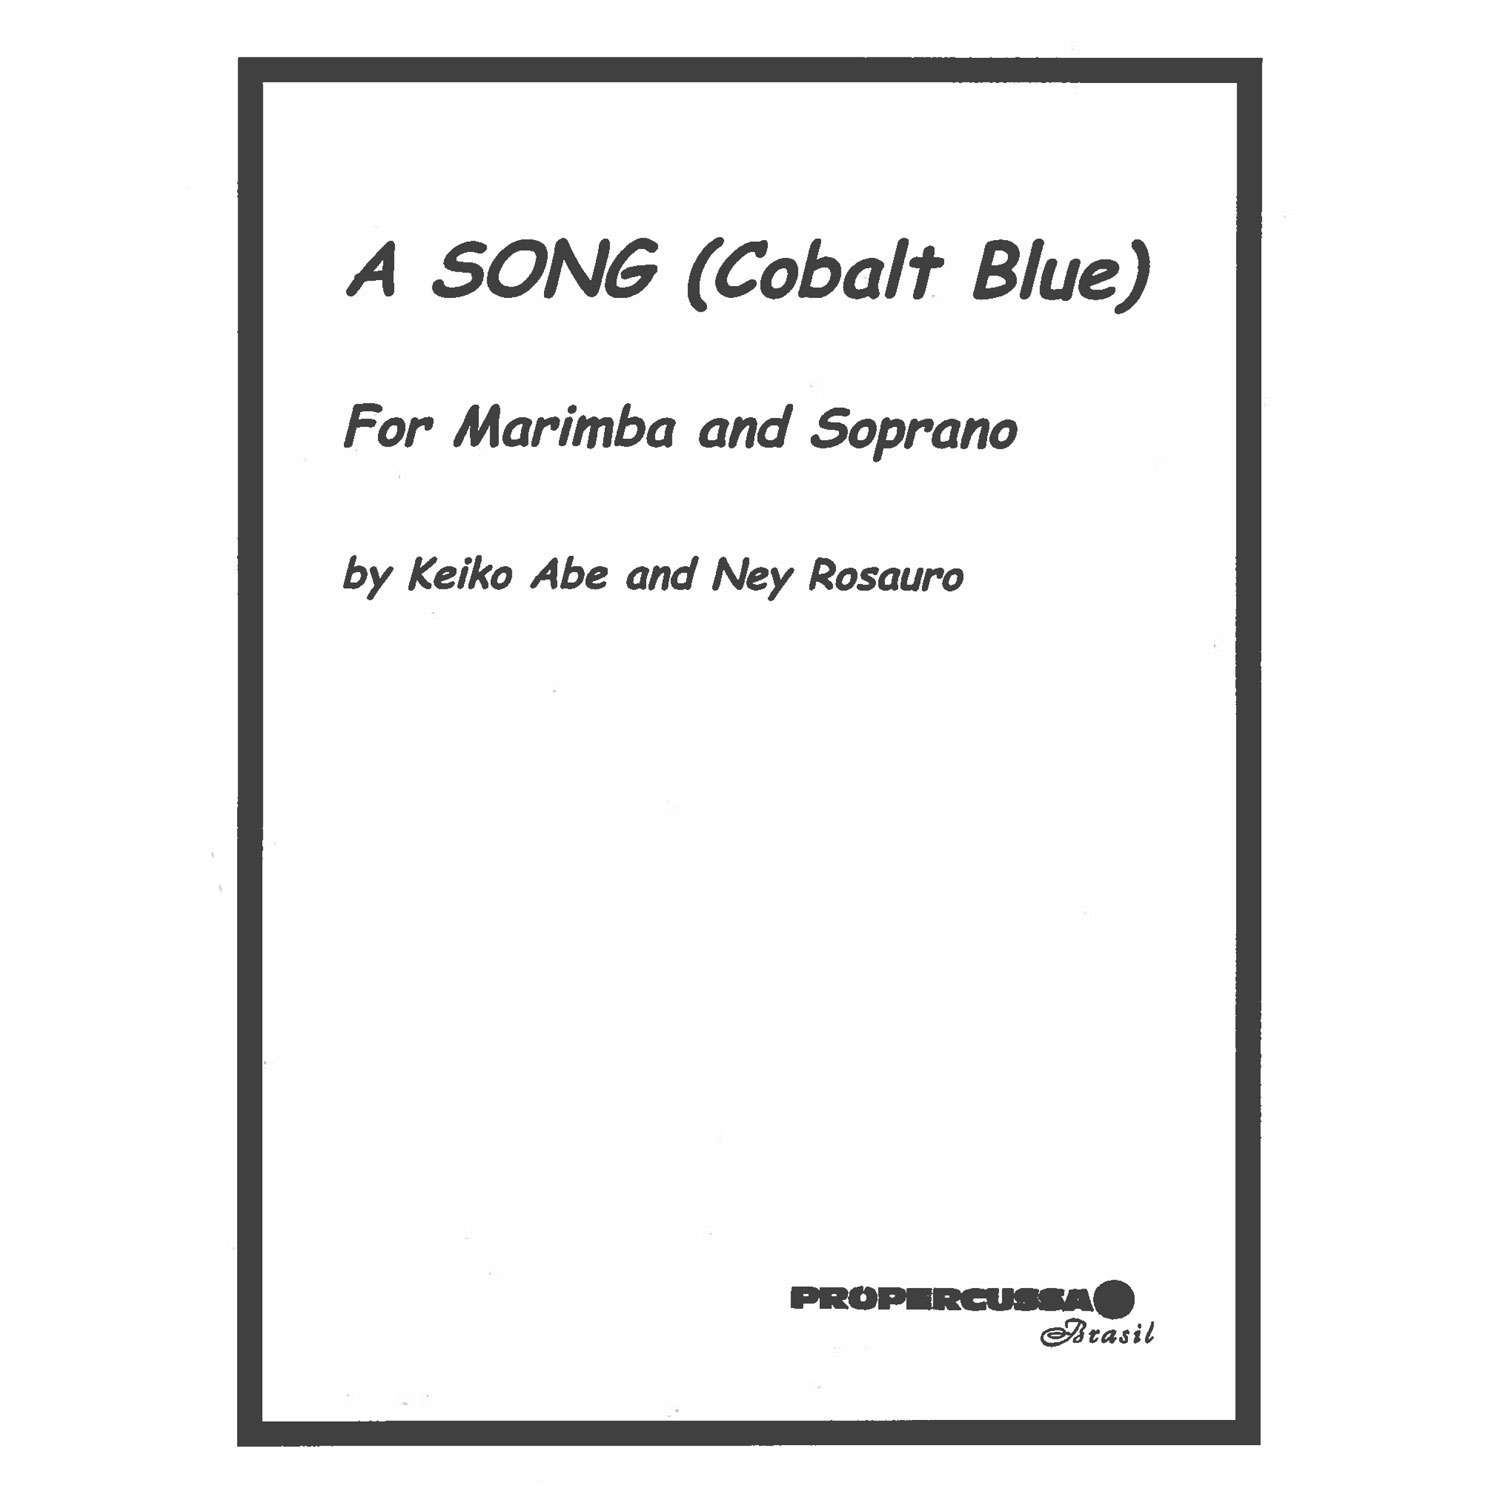 A Song (Cobalt Blue) by Keiko Abe and Ney Rosauro